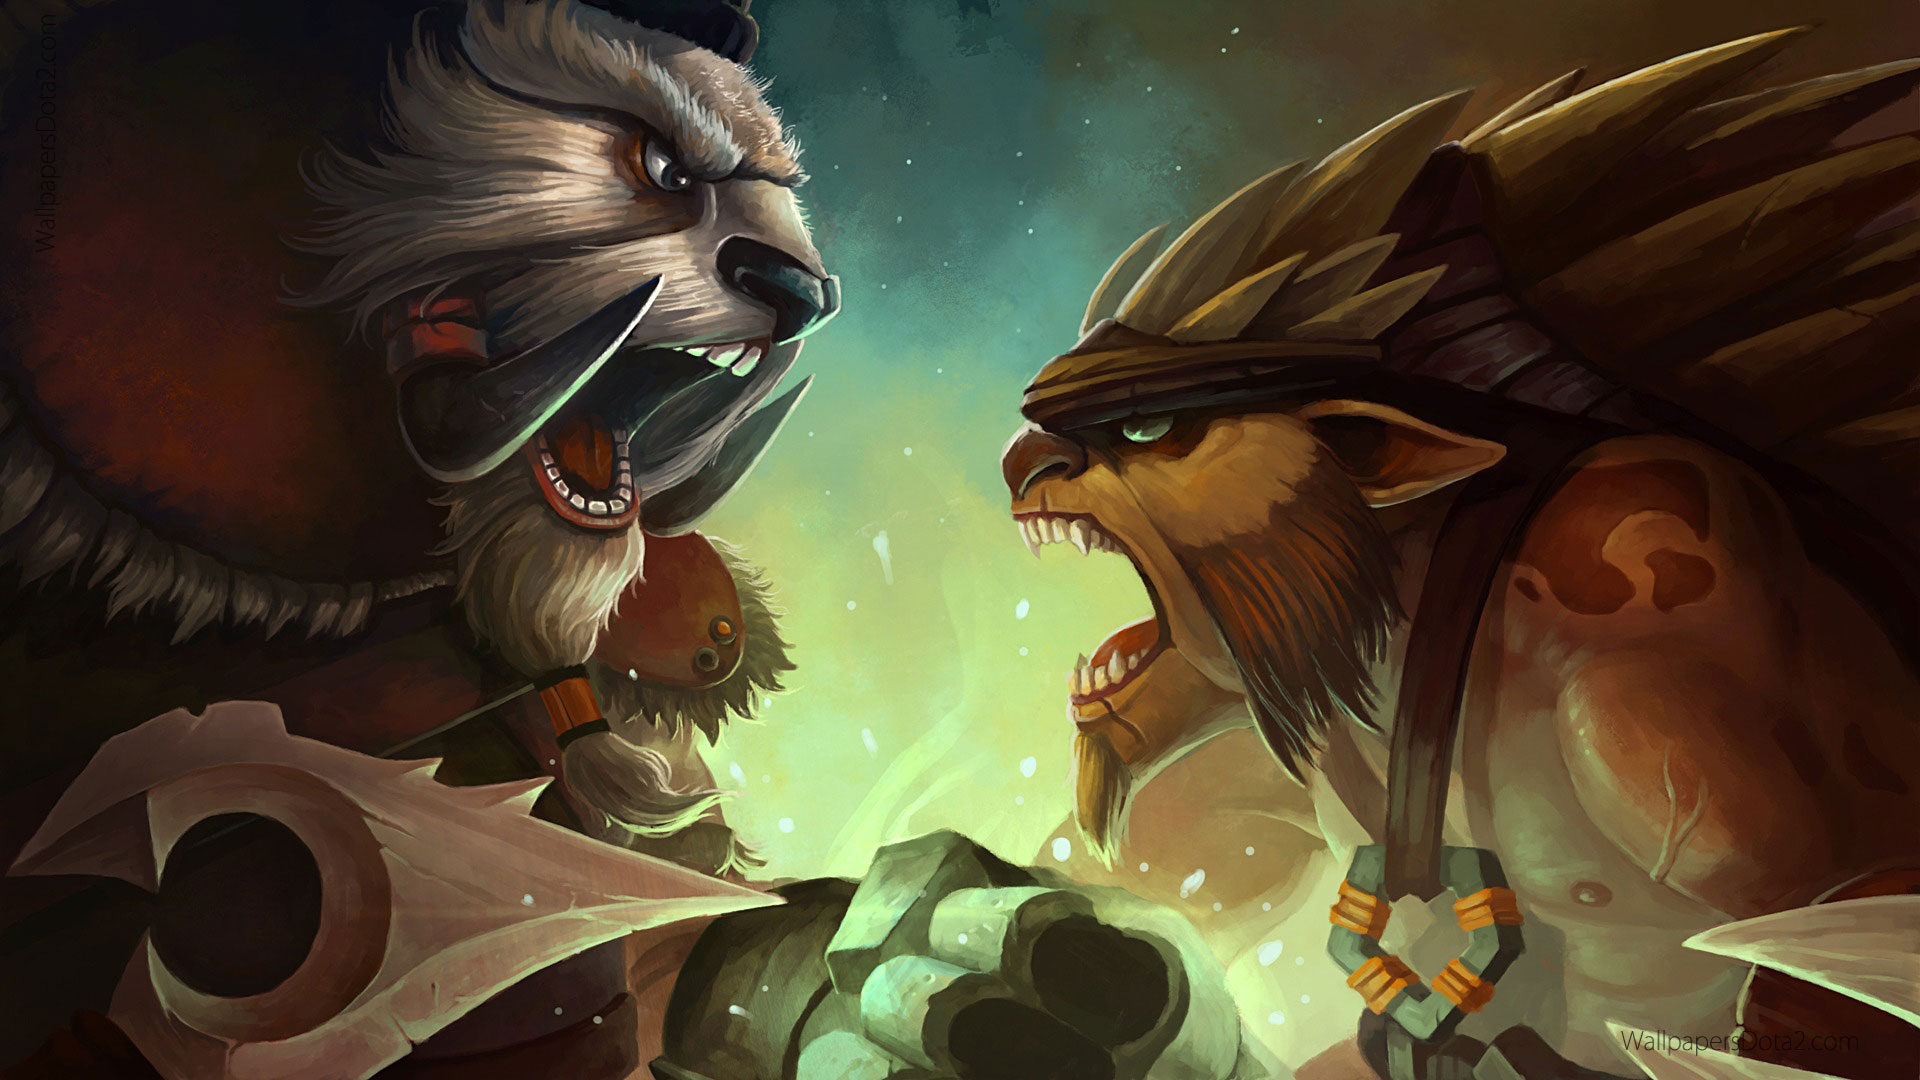 Bristleback vs tusk dota 2 wallpapers